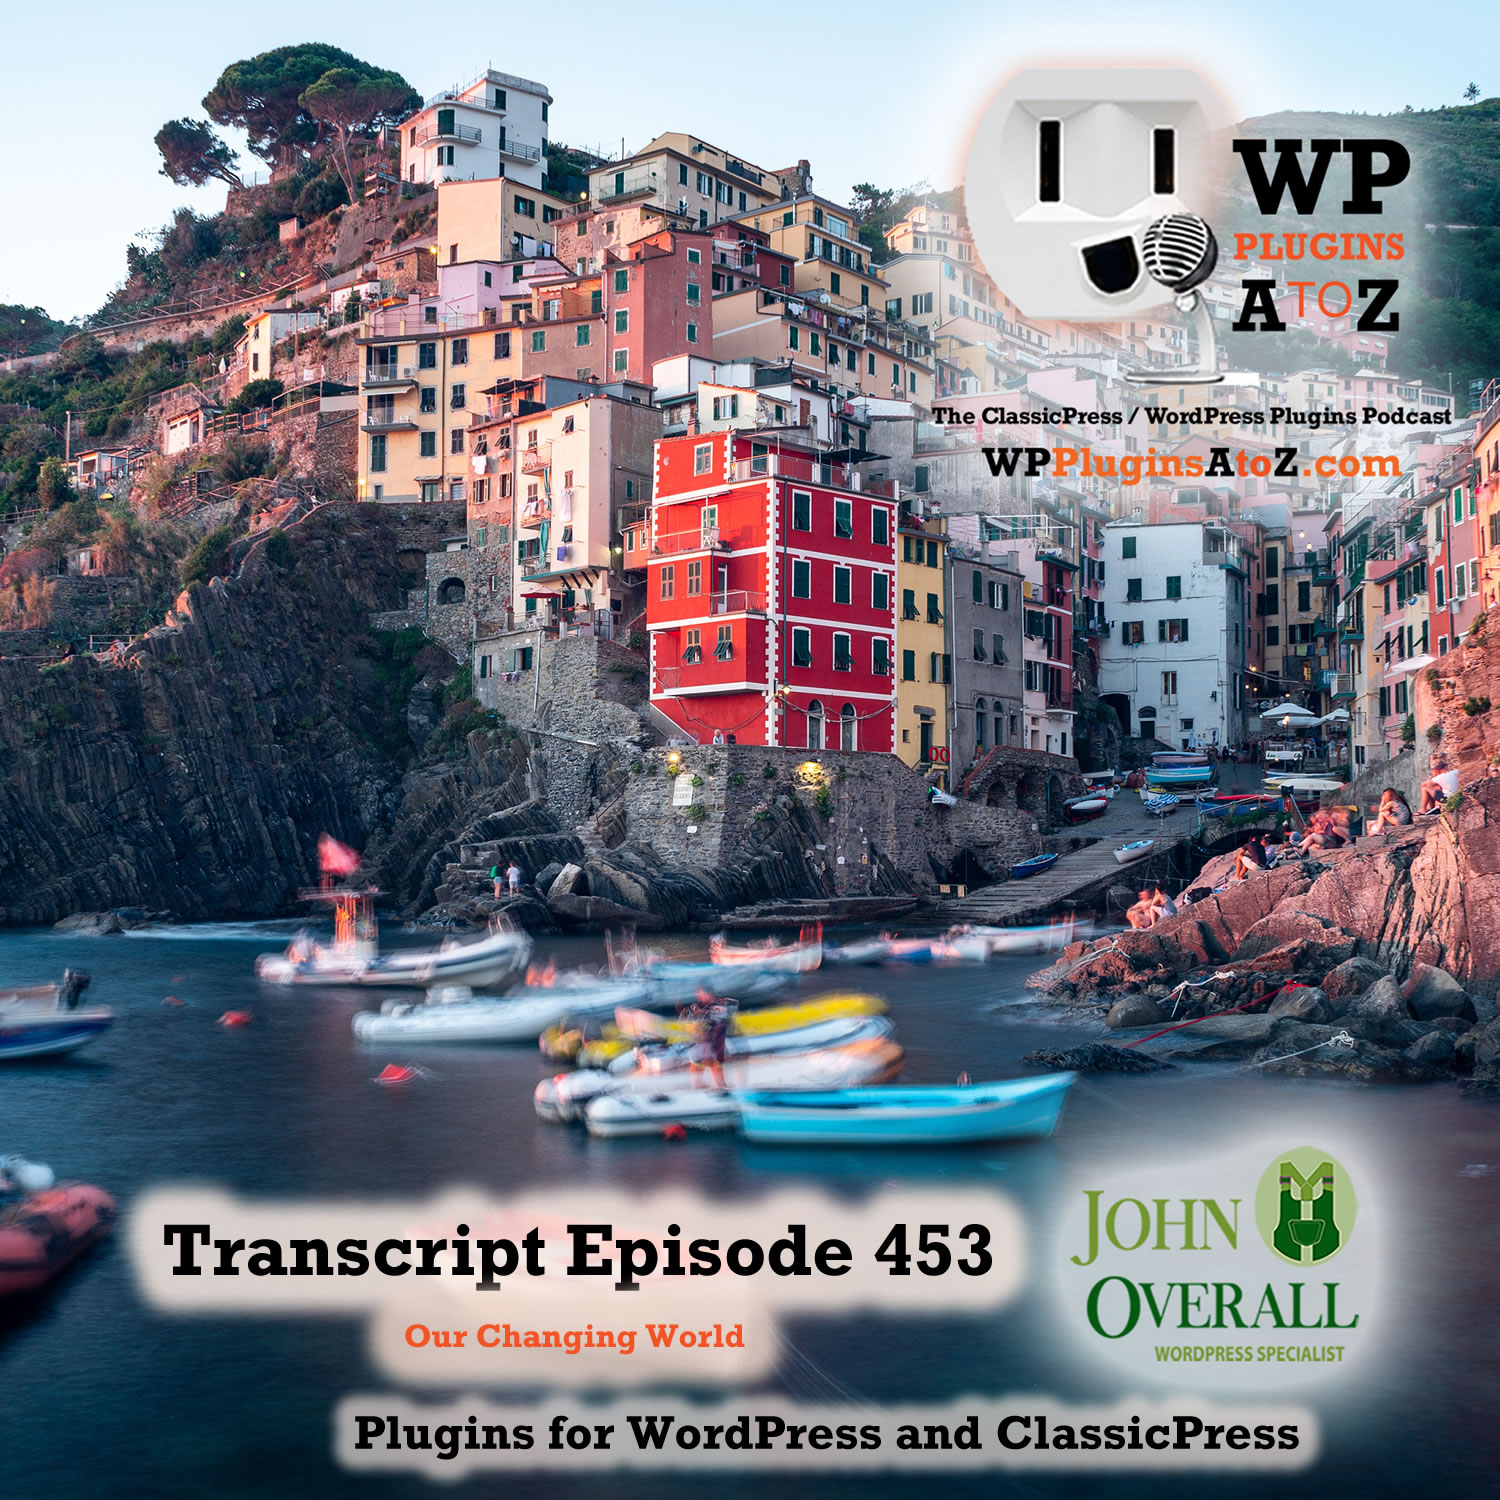 Our Changing World It's Episode 453 with plugins for Membership Photo Galleries, Forcing Logouts, Inactivity, and ClassicPress Options. It's all coming up on WordPress Plugins A-Z!